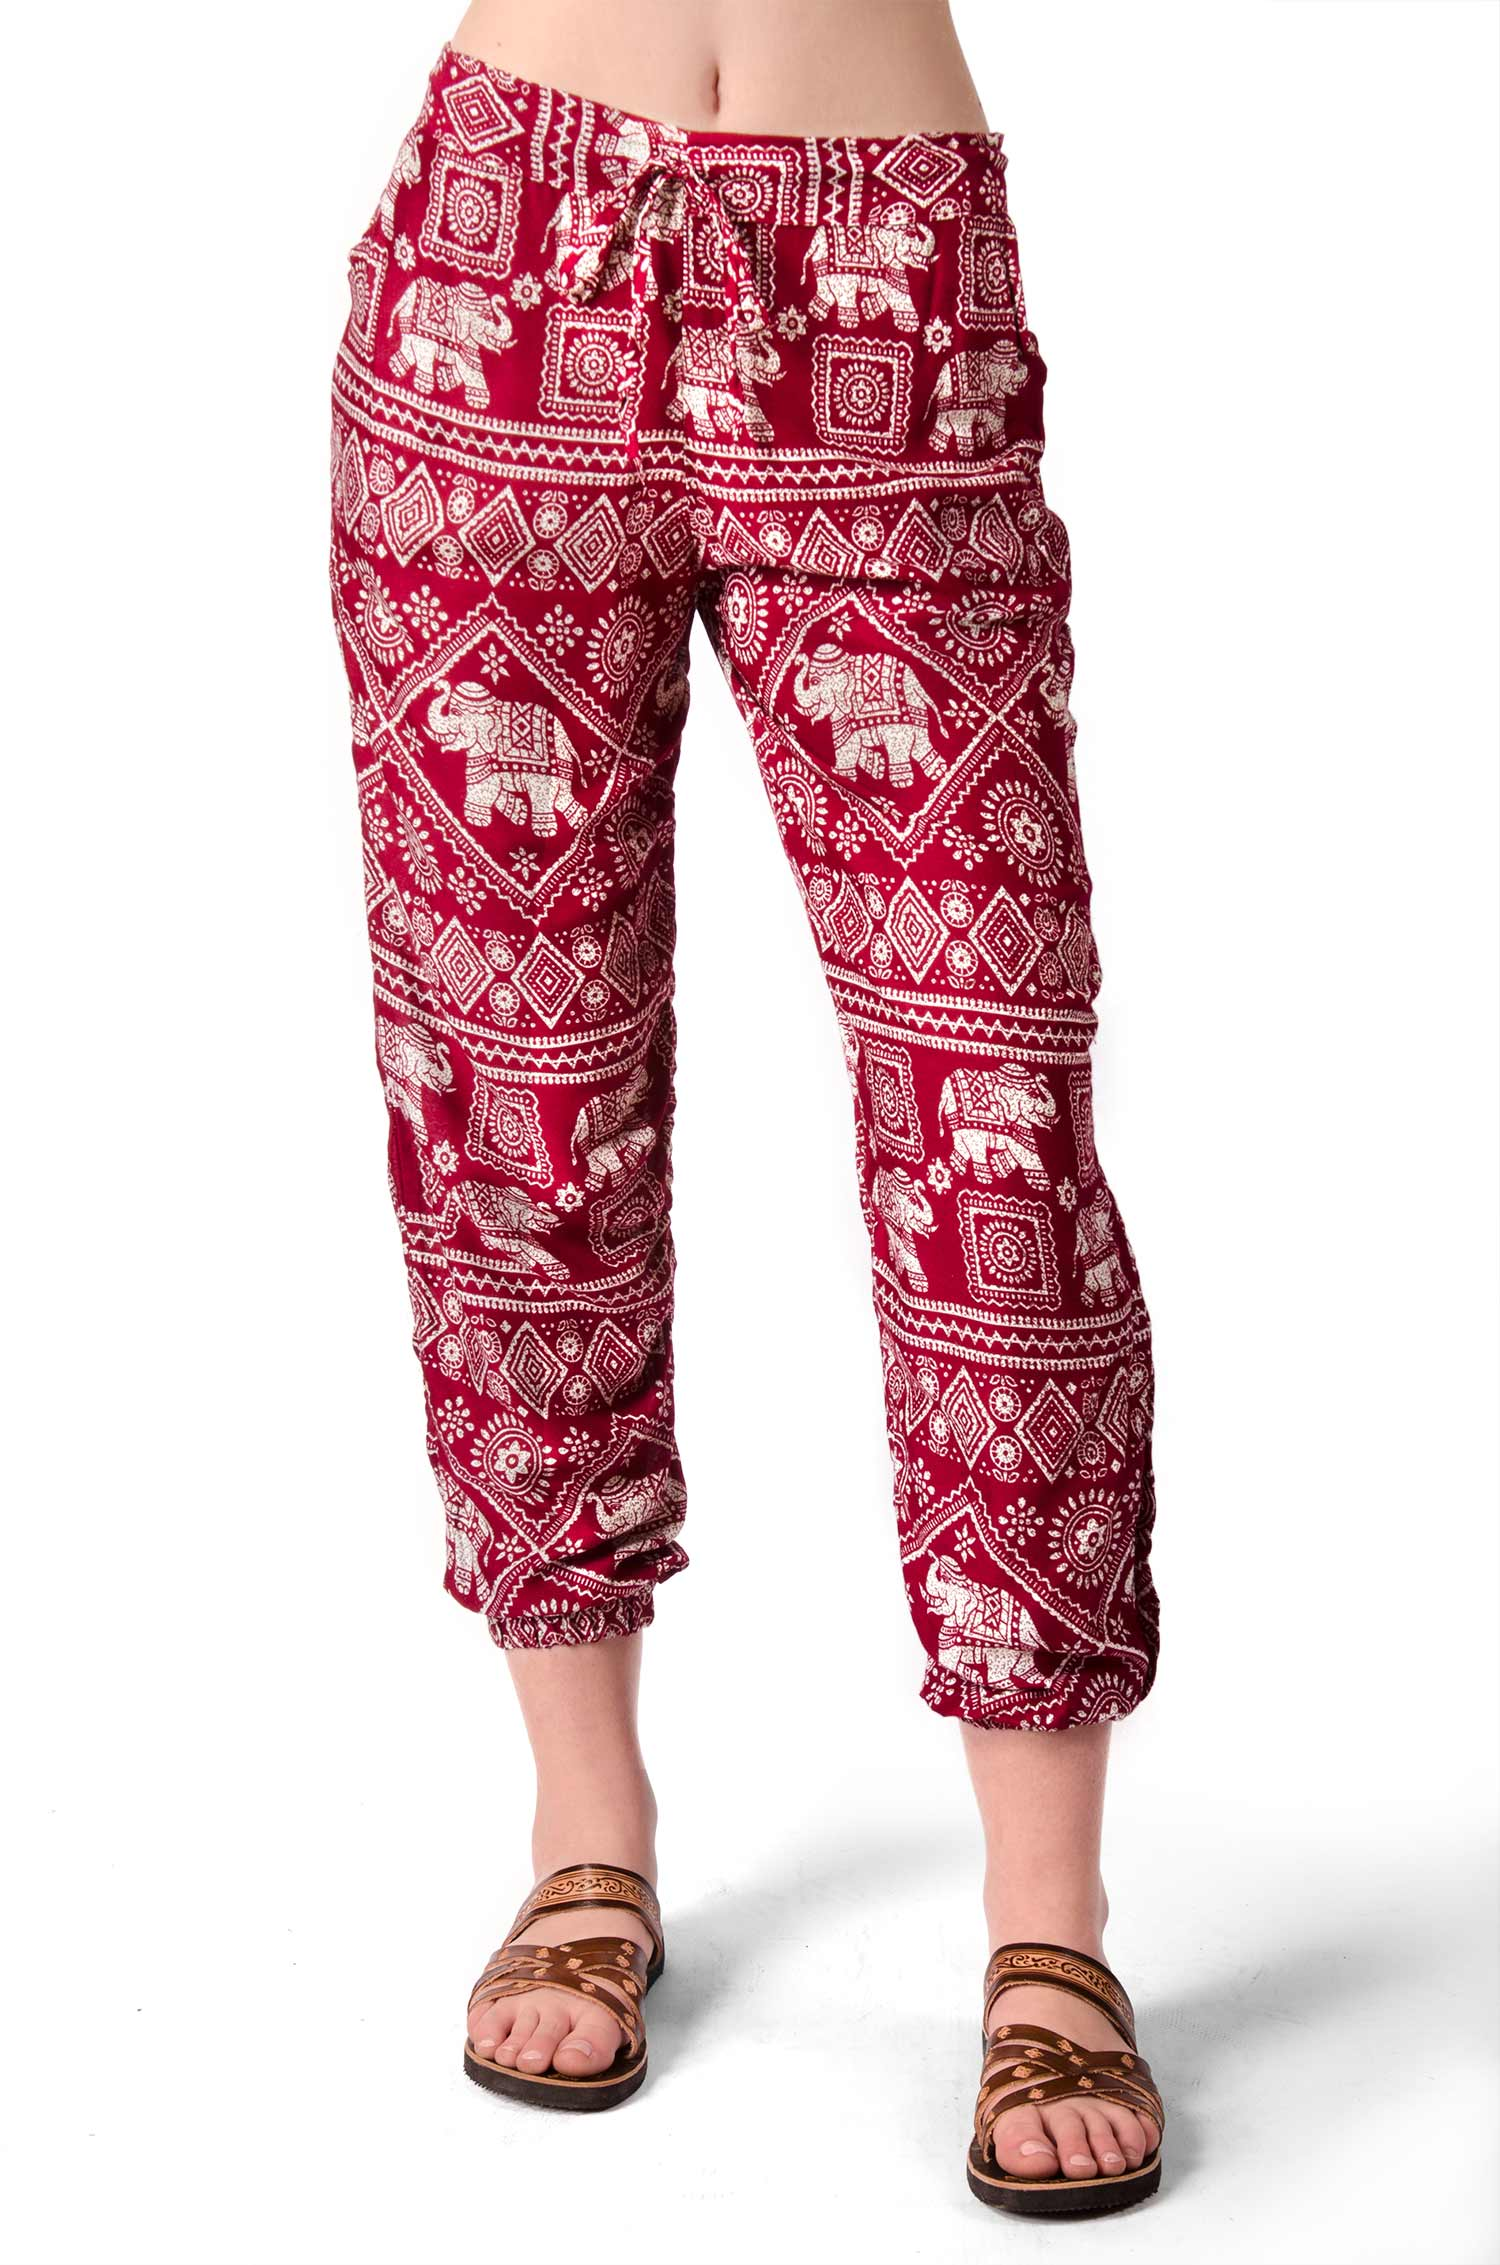 Elephant Print Capri Pants - Red - 4473R